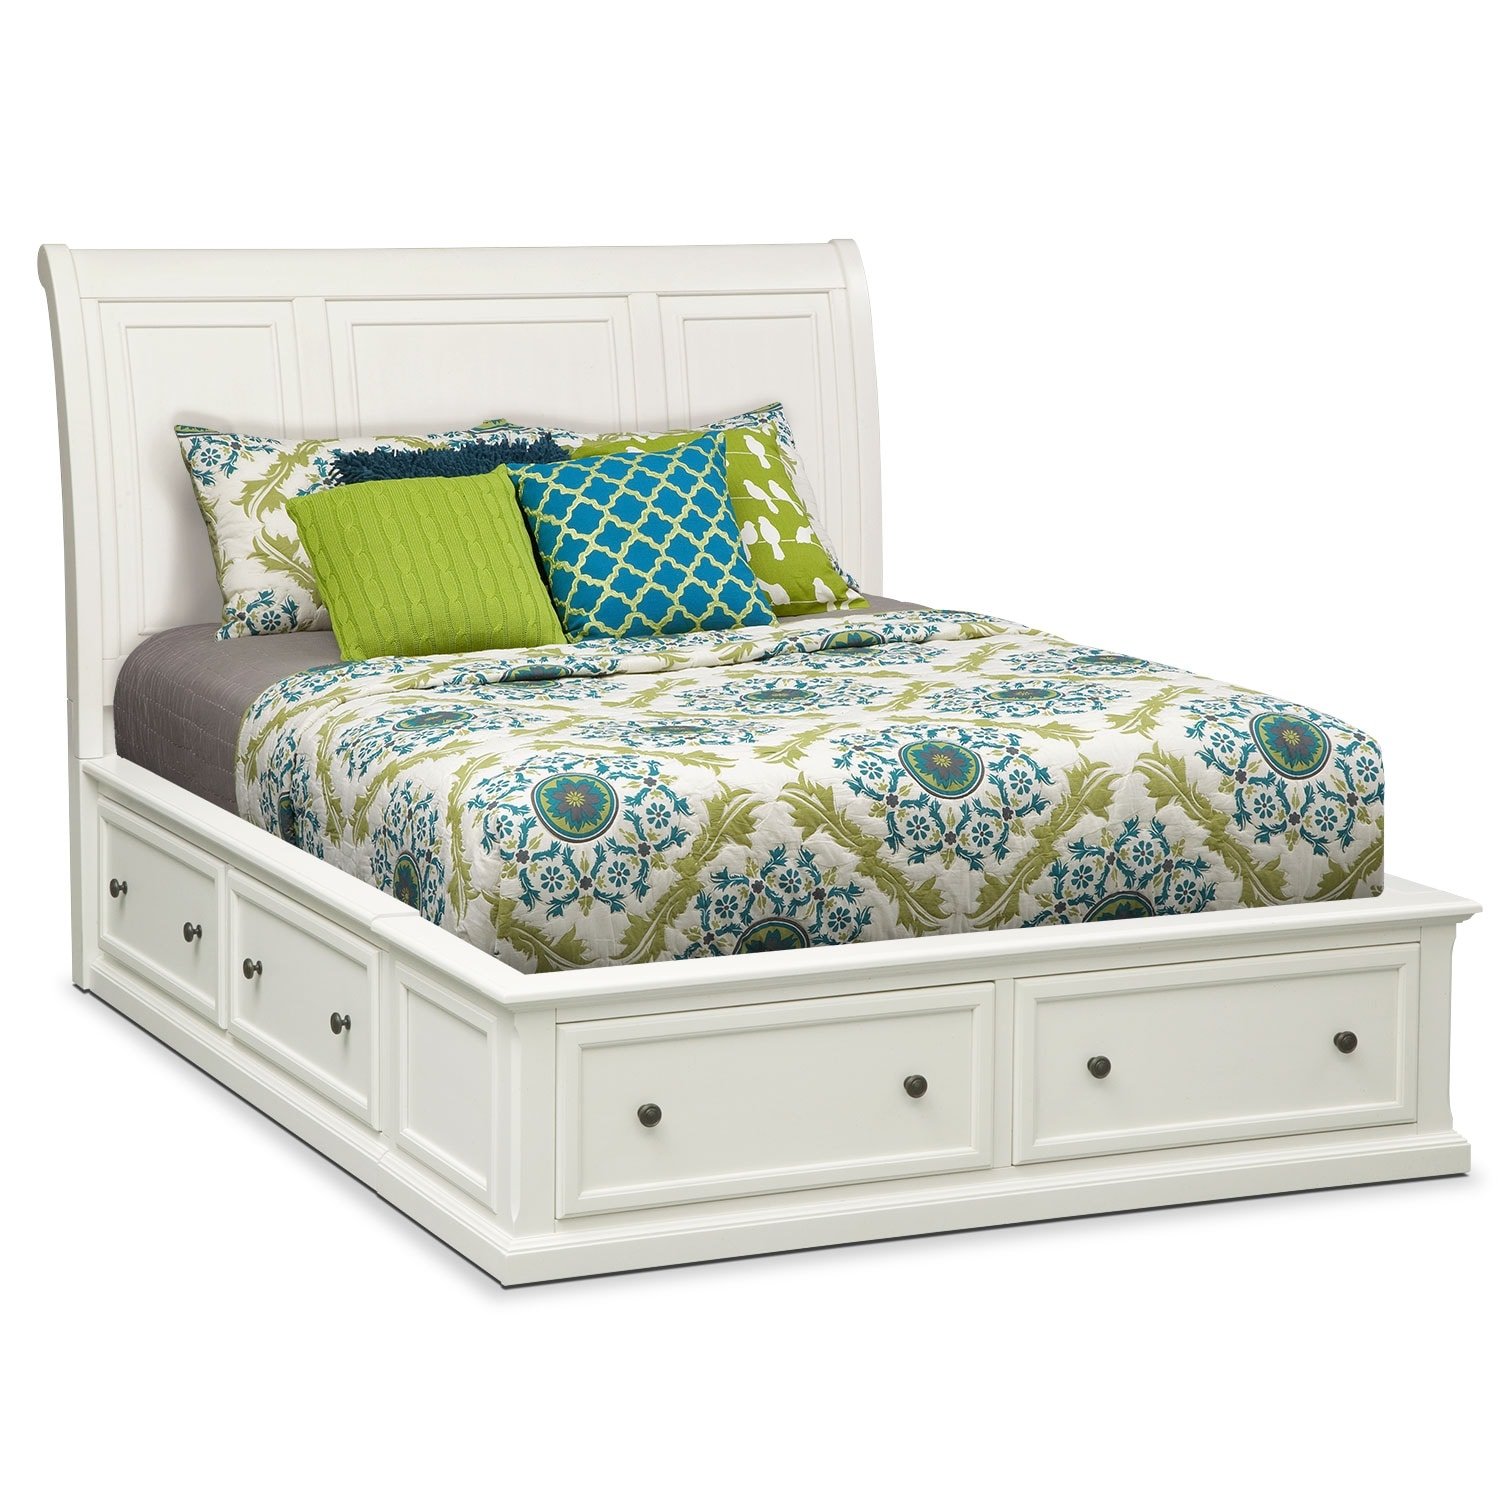 hanover king storage bed white value city furniture 17689 | 398354